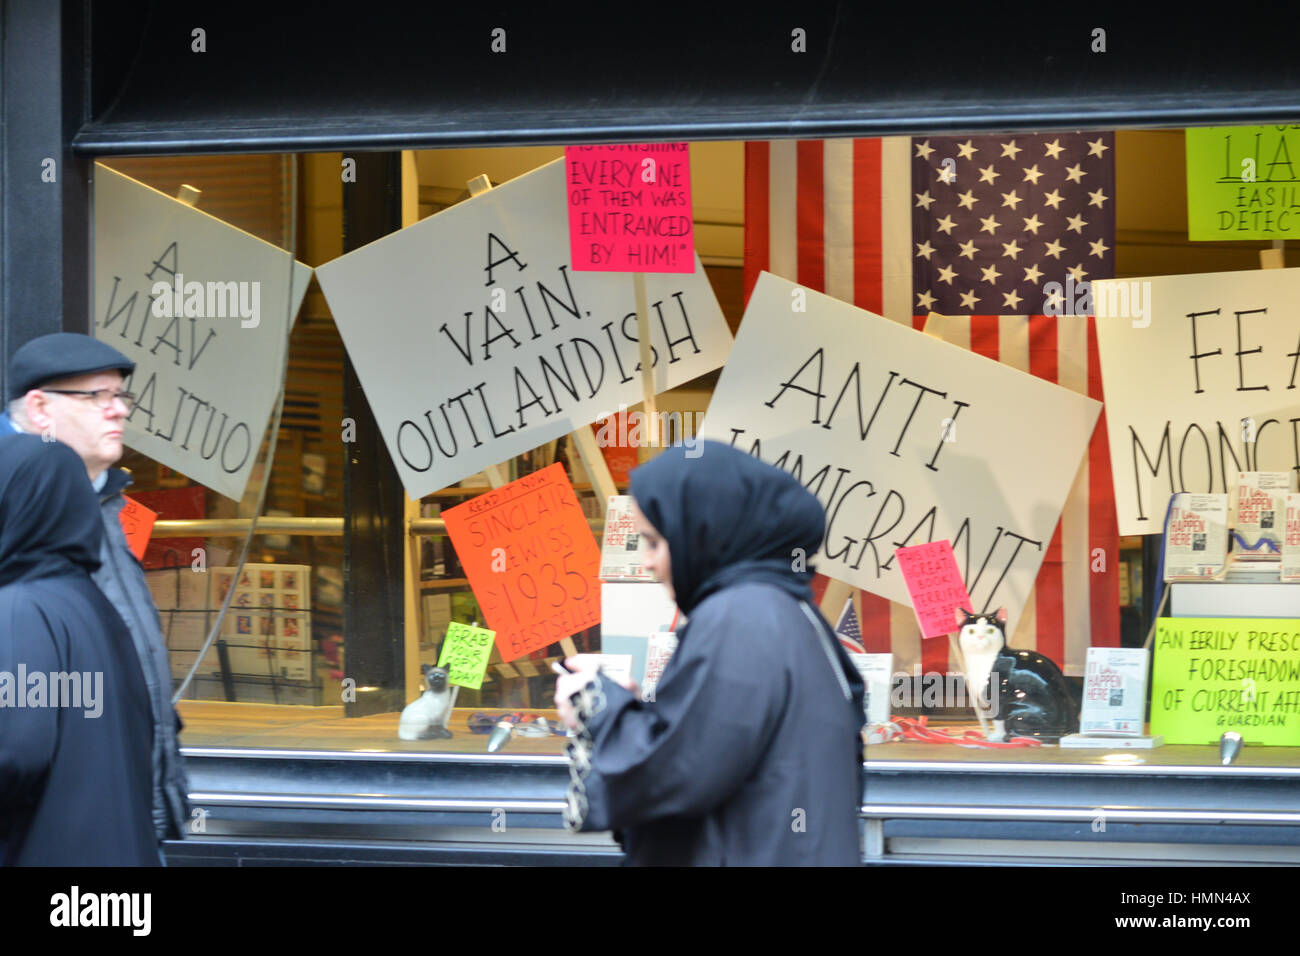 Piccadilly, London, UK. 4th February 2017. Waterstones shop window display at the Stop Trump's Muslim Ban in - Stock Image